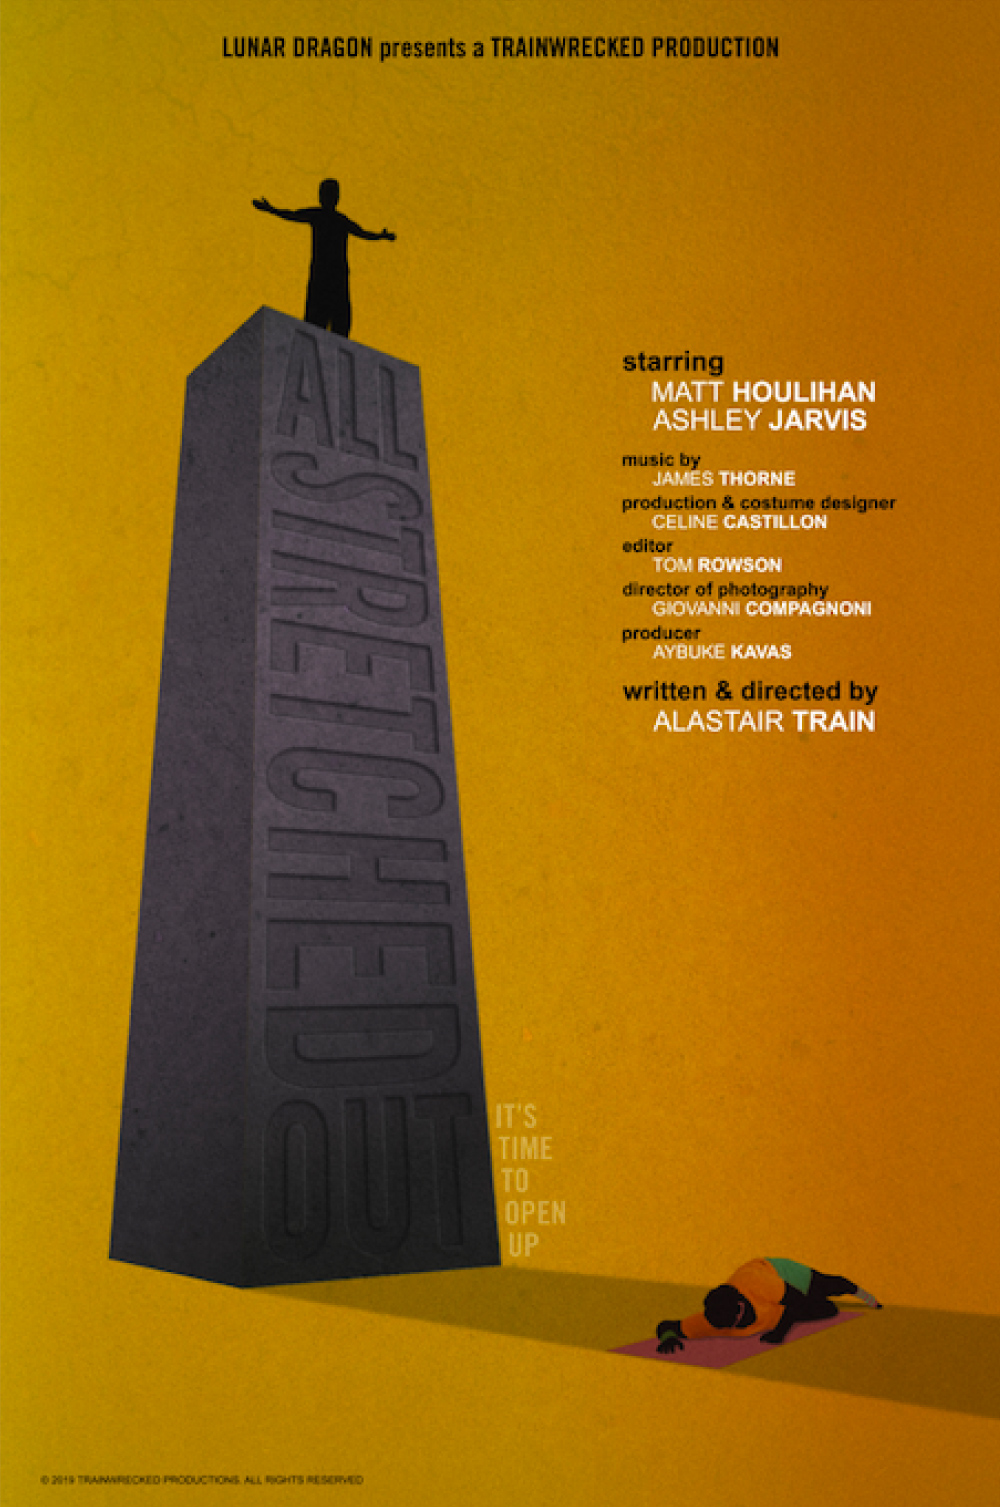 A man stands on top a huge stone plinth, towering over another man who is lying down in it's shadow. The poster for the film All Stretched Out, produced by Lunar Dragon Productions.